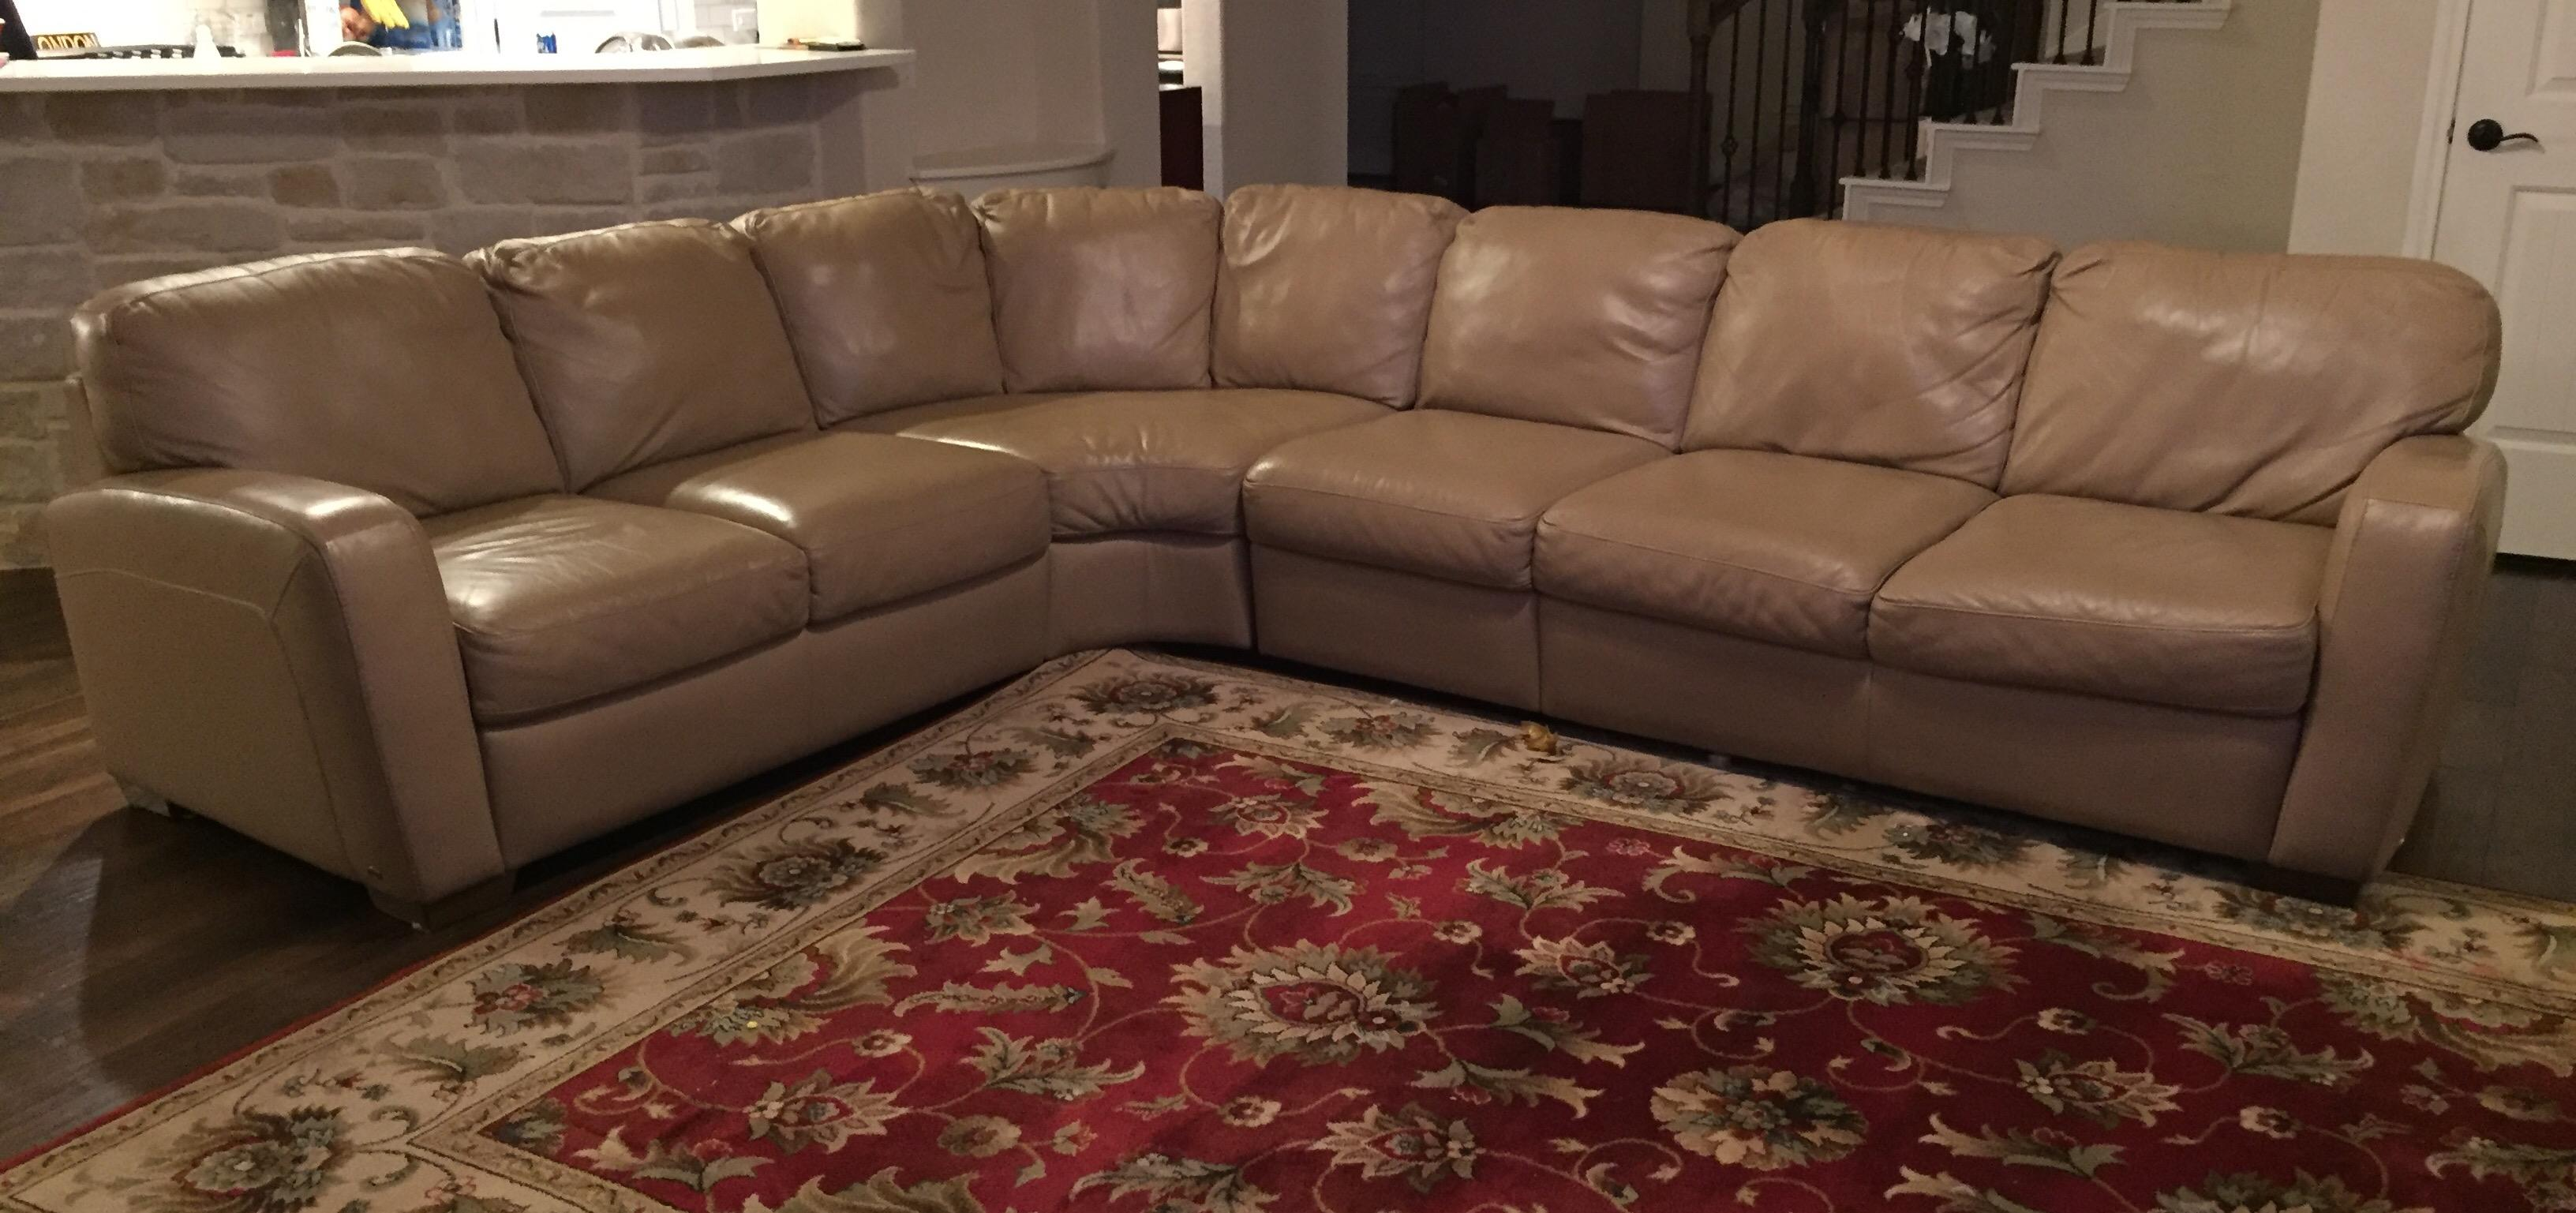 We found the best leather sofas from manufacturers like serta, west elm, and more. Natuzzi Leather Sectional Sofa | Chairish